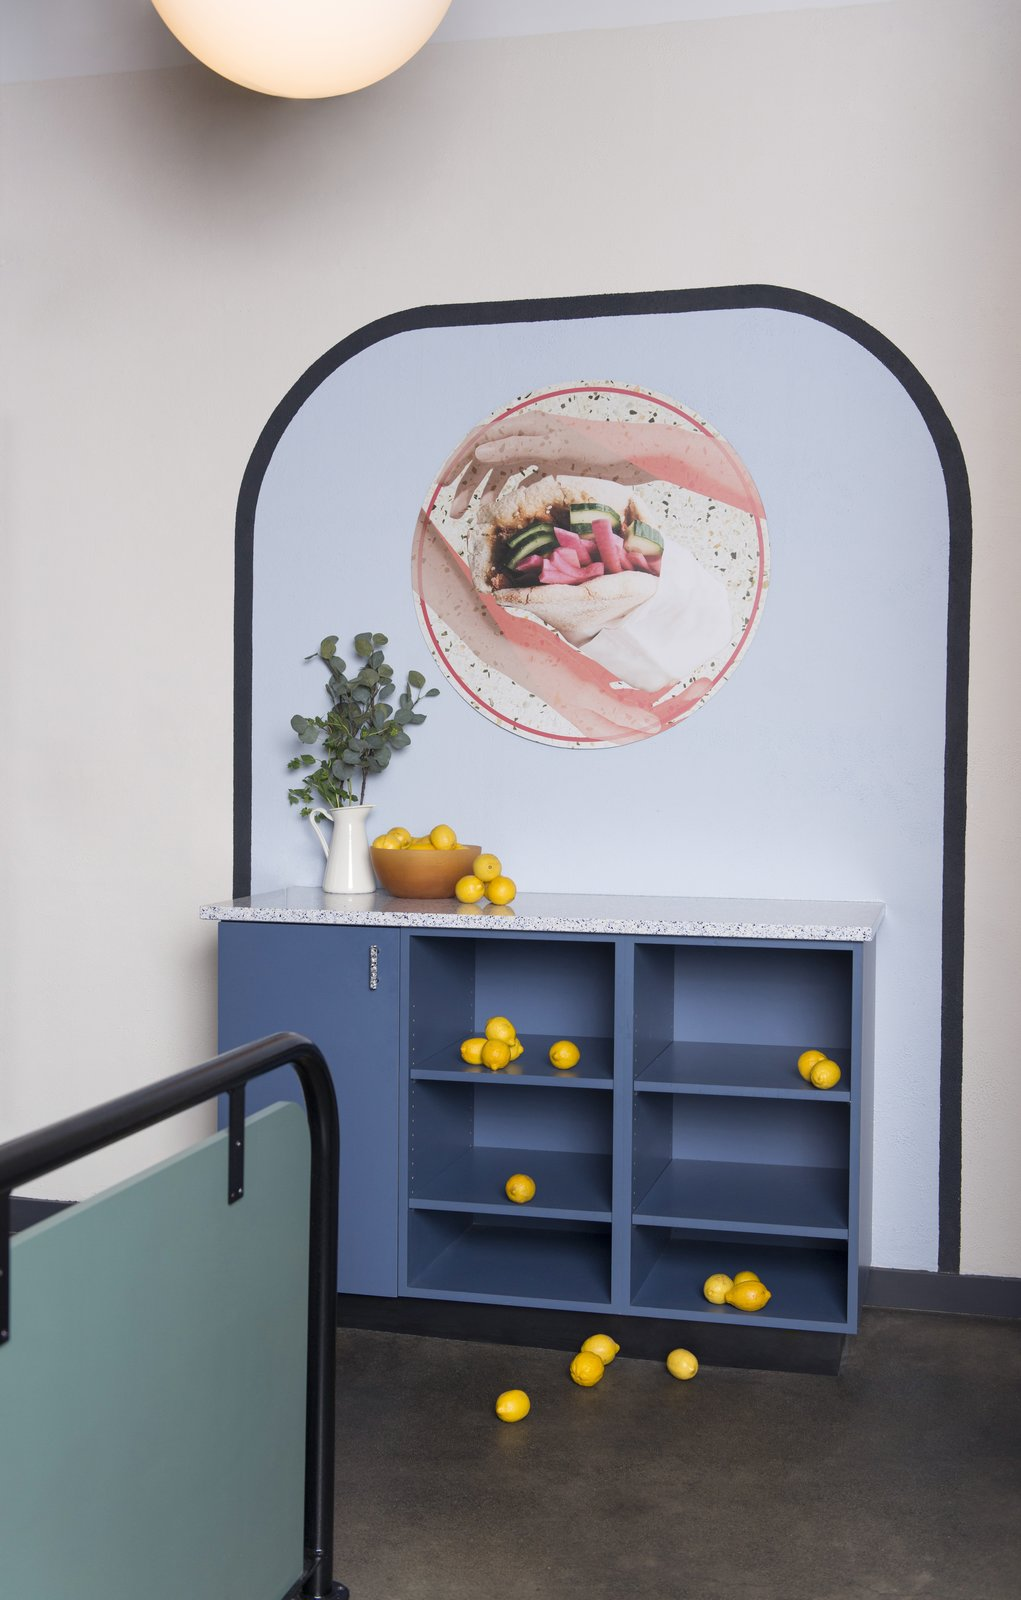 Storage Room and Cabinet Storage Type  Photo 4 of 14 in Fun, Cheeky Interiors Give This Middle Eastern Eatery a Modern Edge